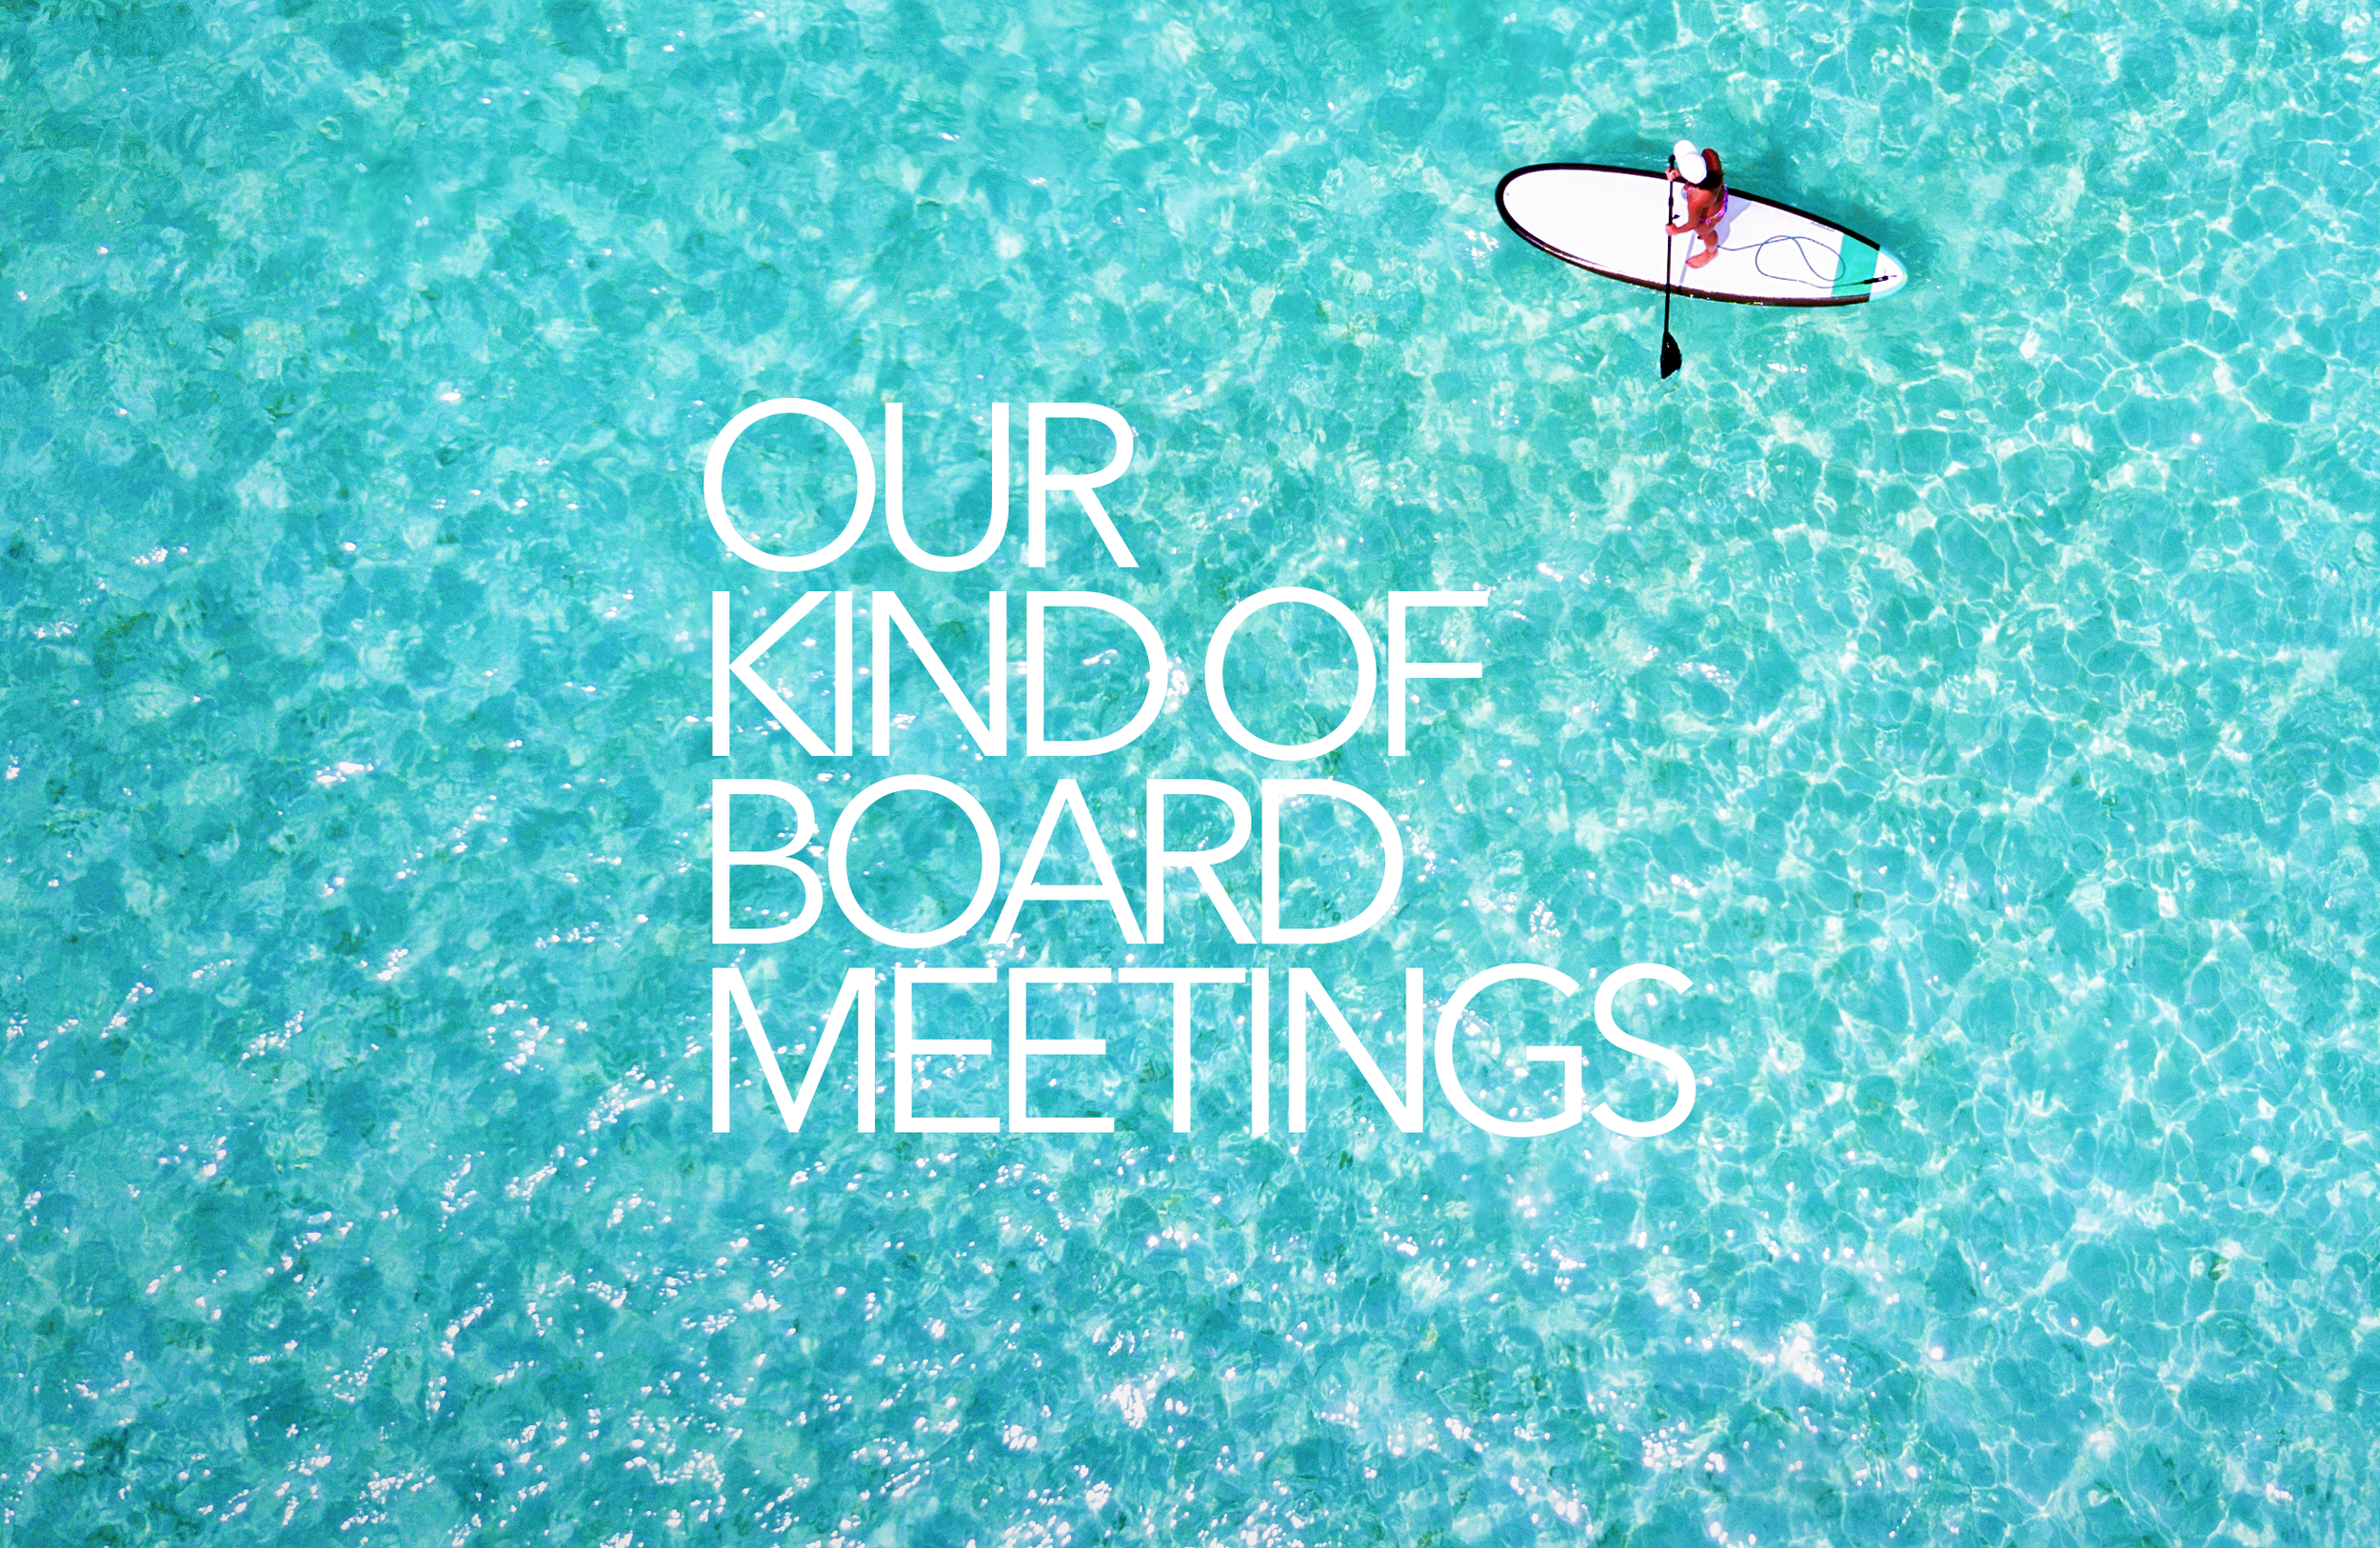 OURKINDOFBOARDMEETINGS.png